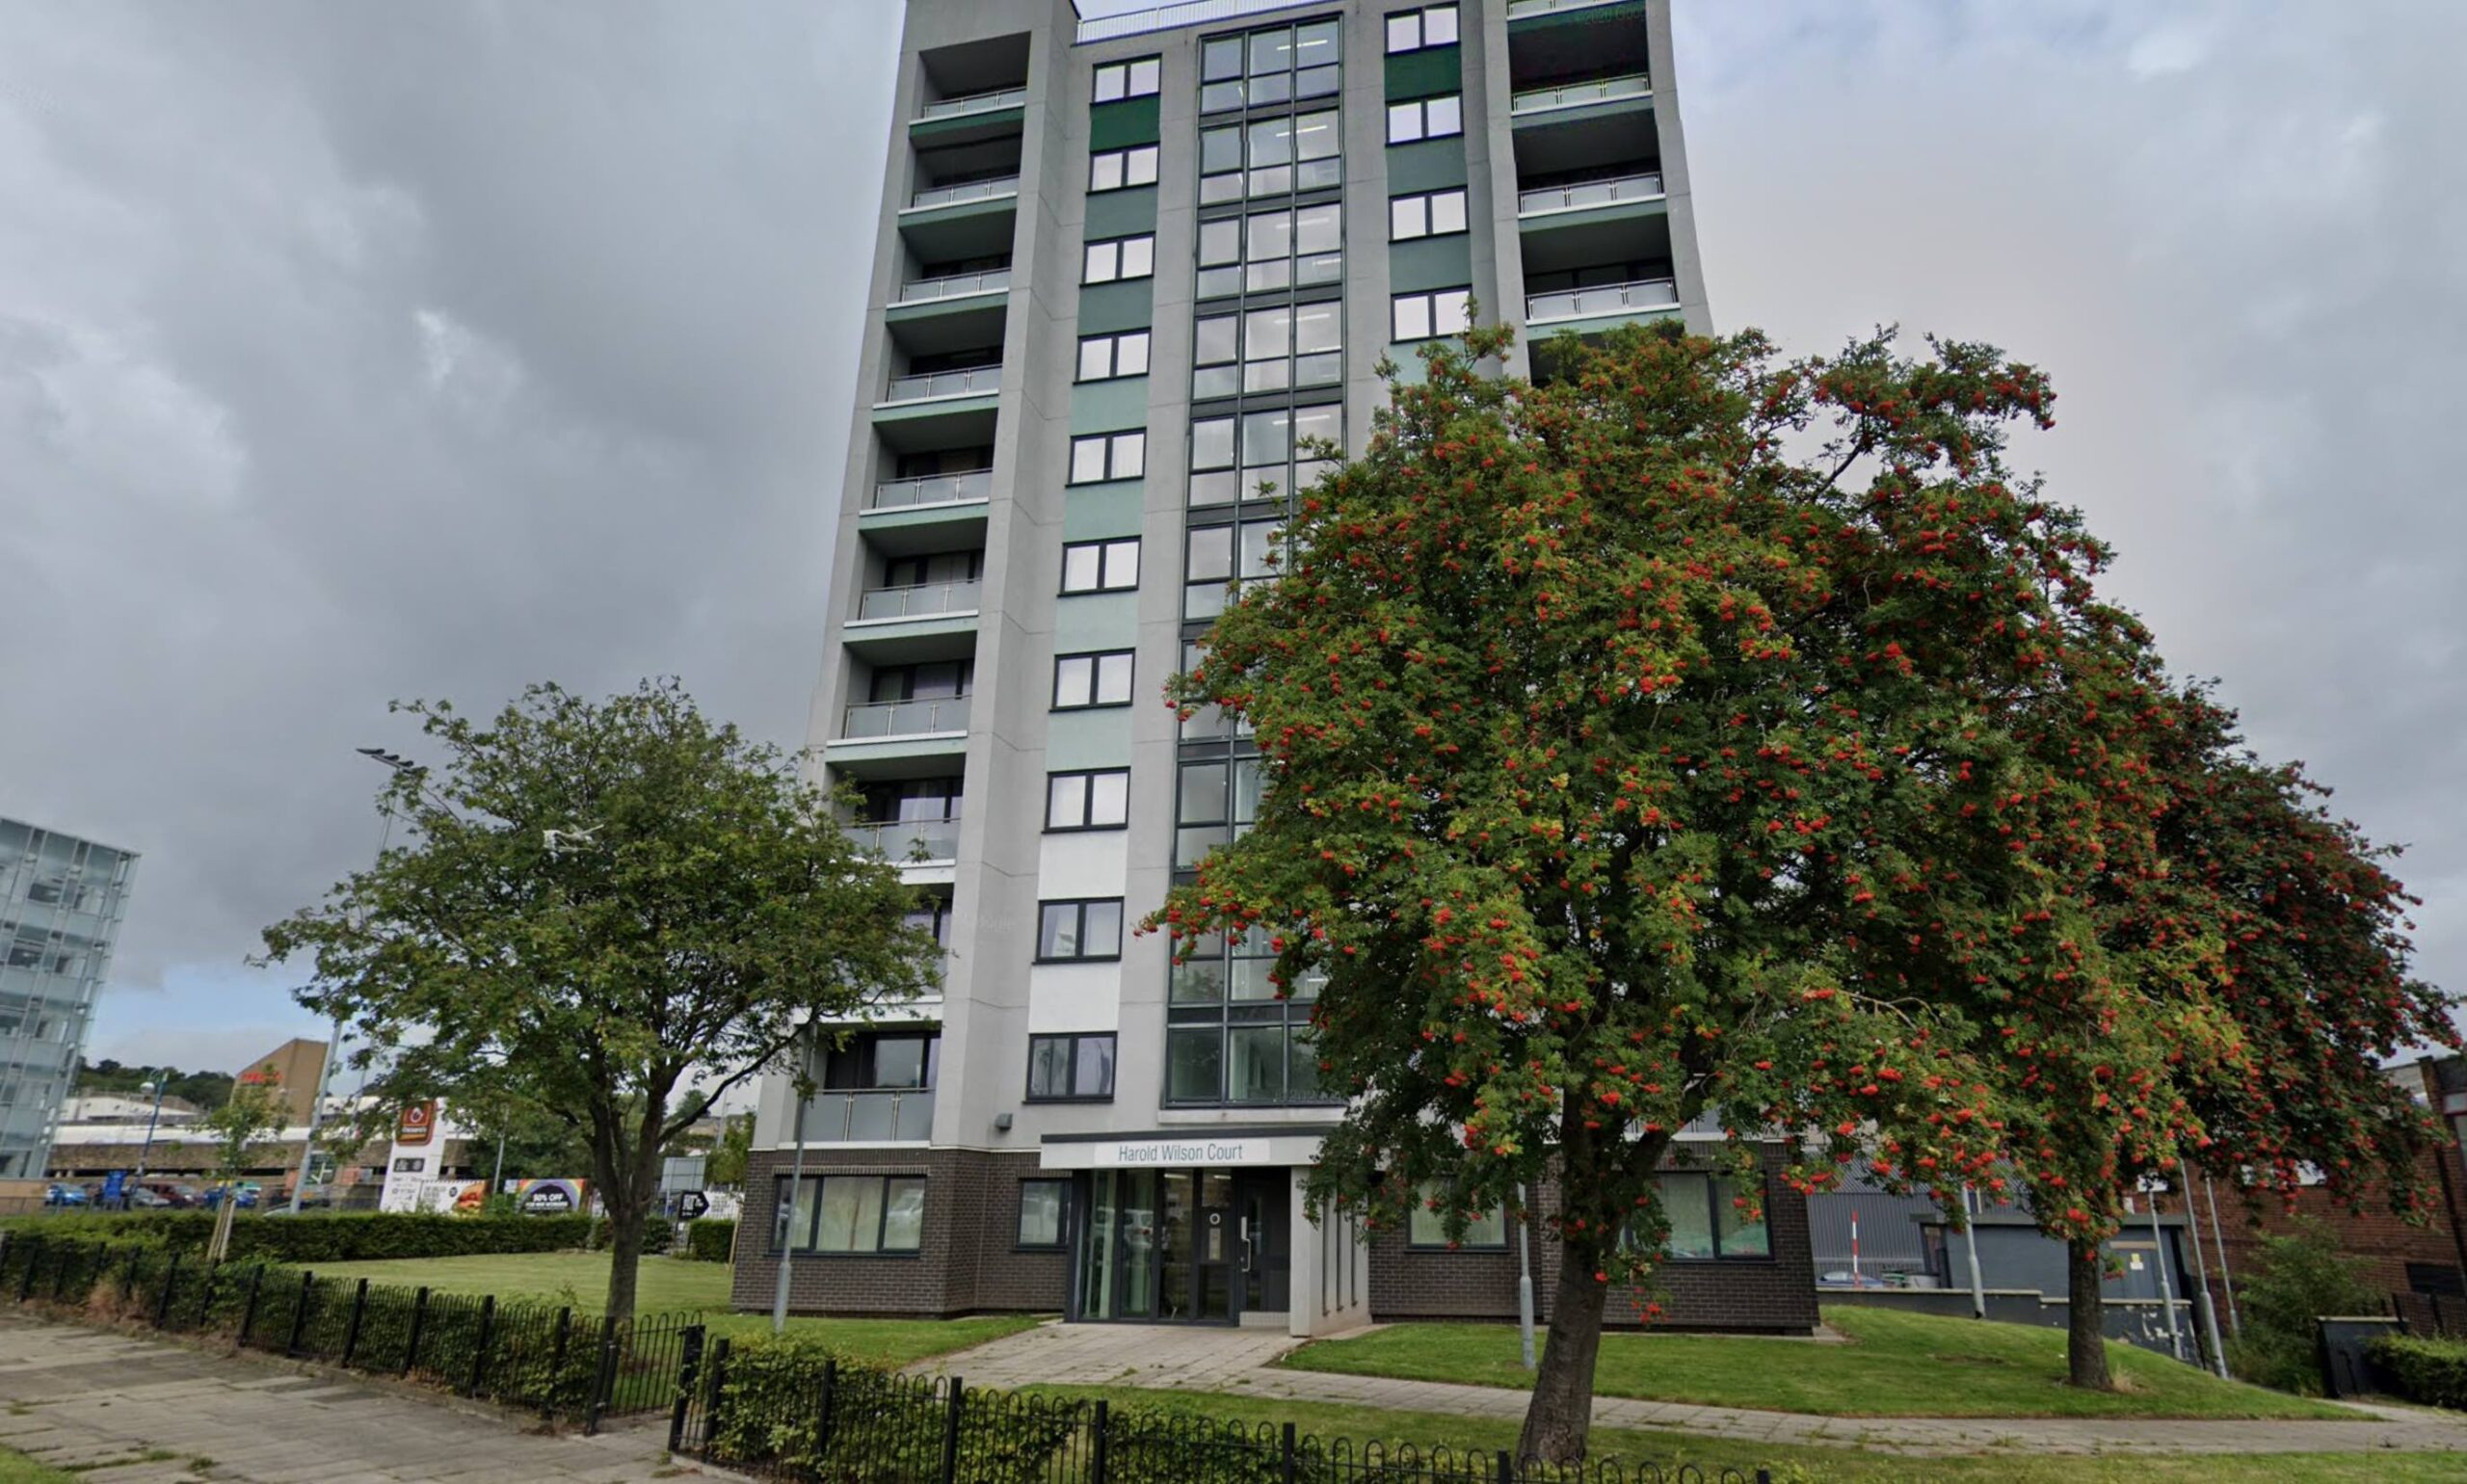 Extra Safety Precautions to be Added for Three Huddersfield High-Rises